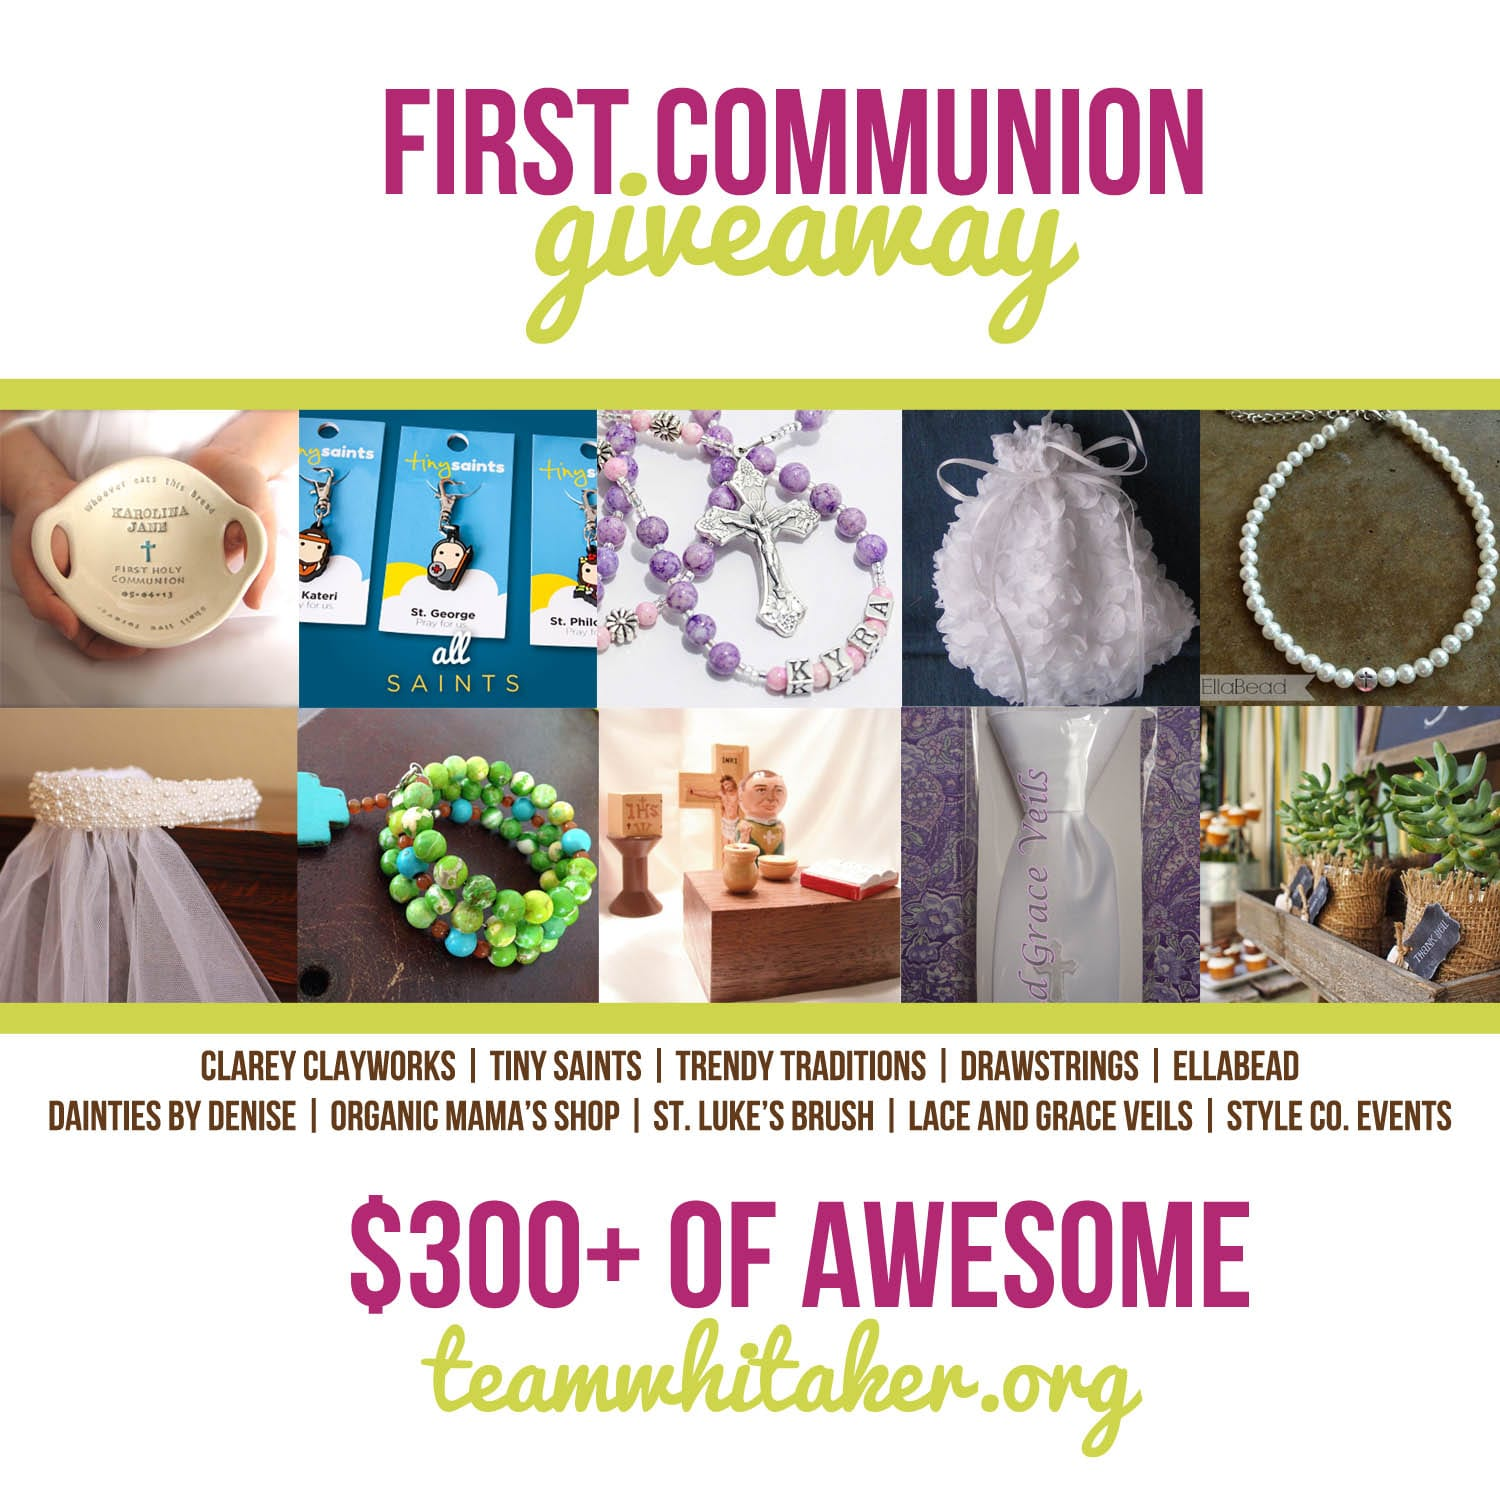 Looking for that perfect First Communion gift for your child or friend? Look no farther. These ten ideas are beautiful, tasteful and sure to be your son or daughter's new favorite religious keepsake.